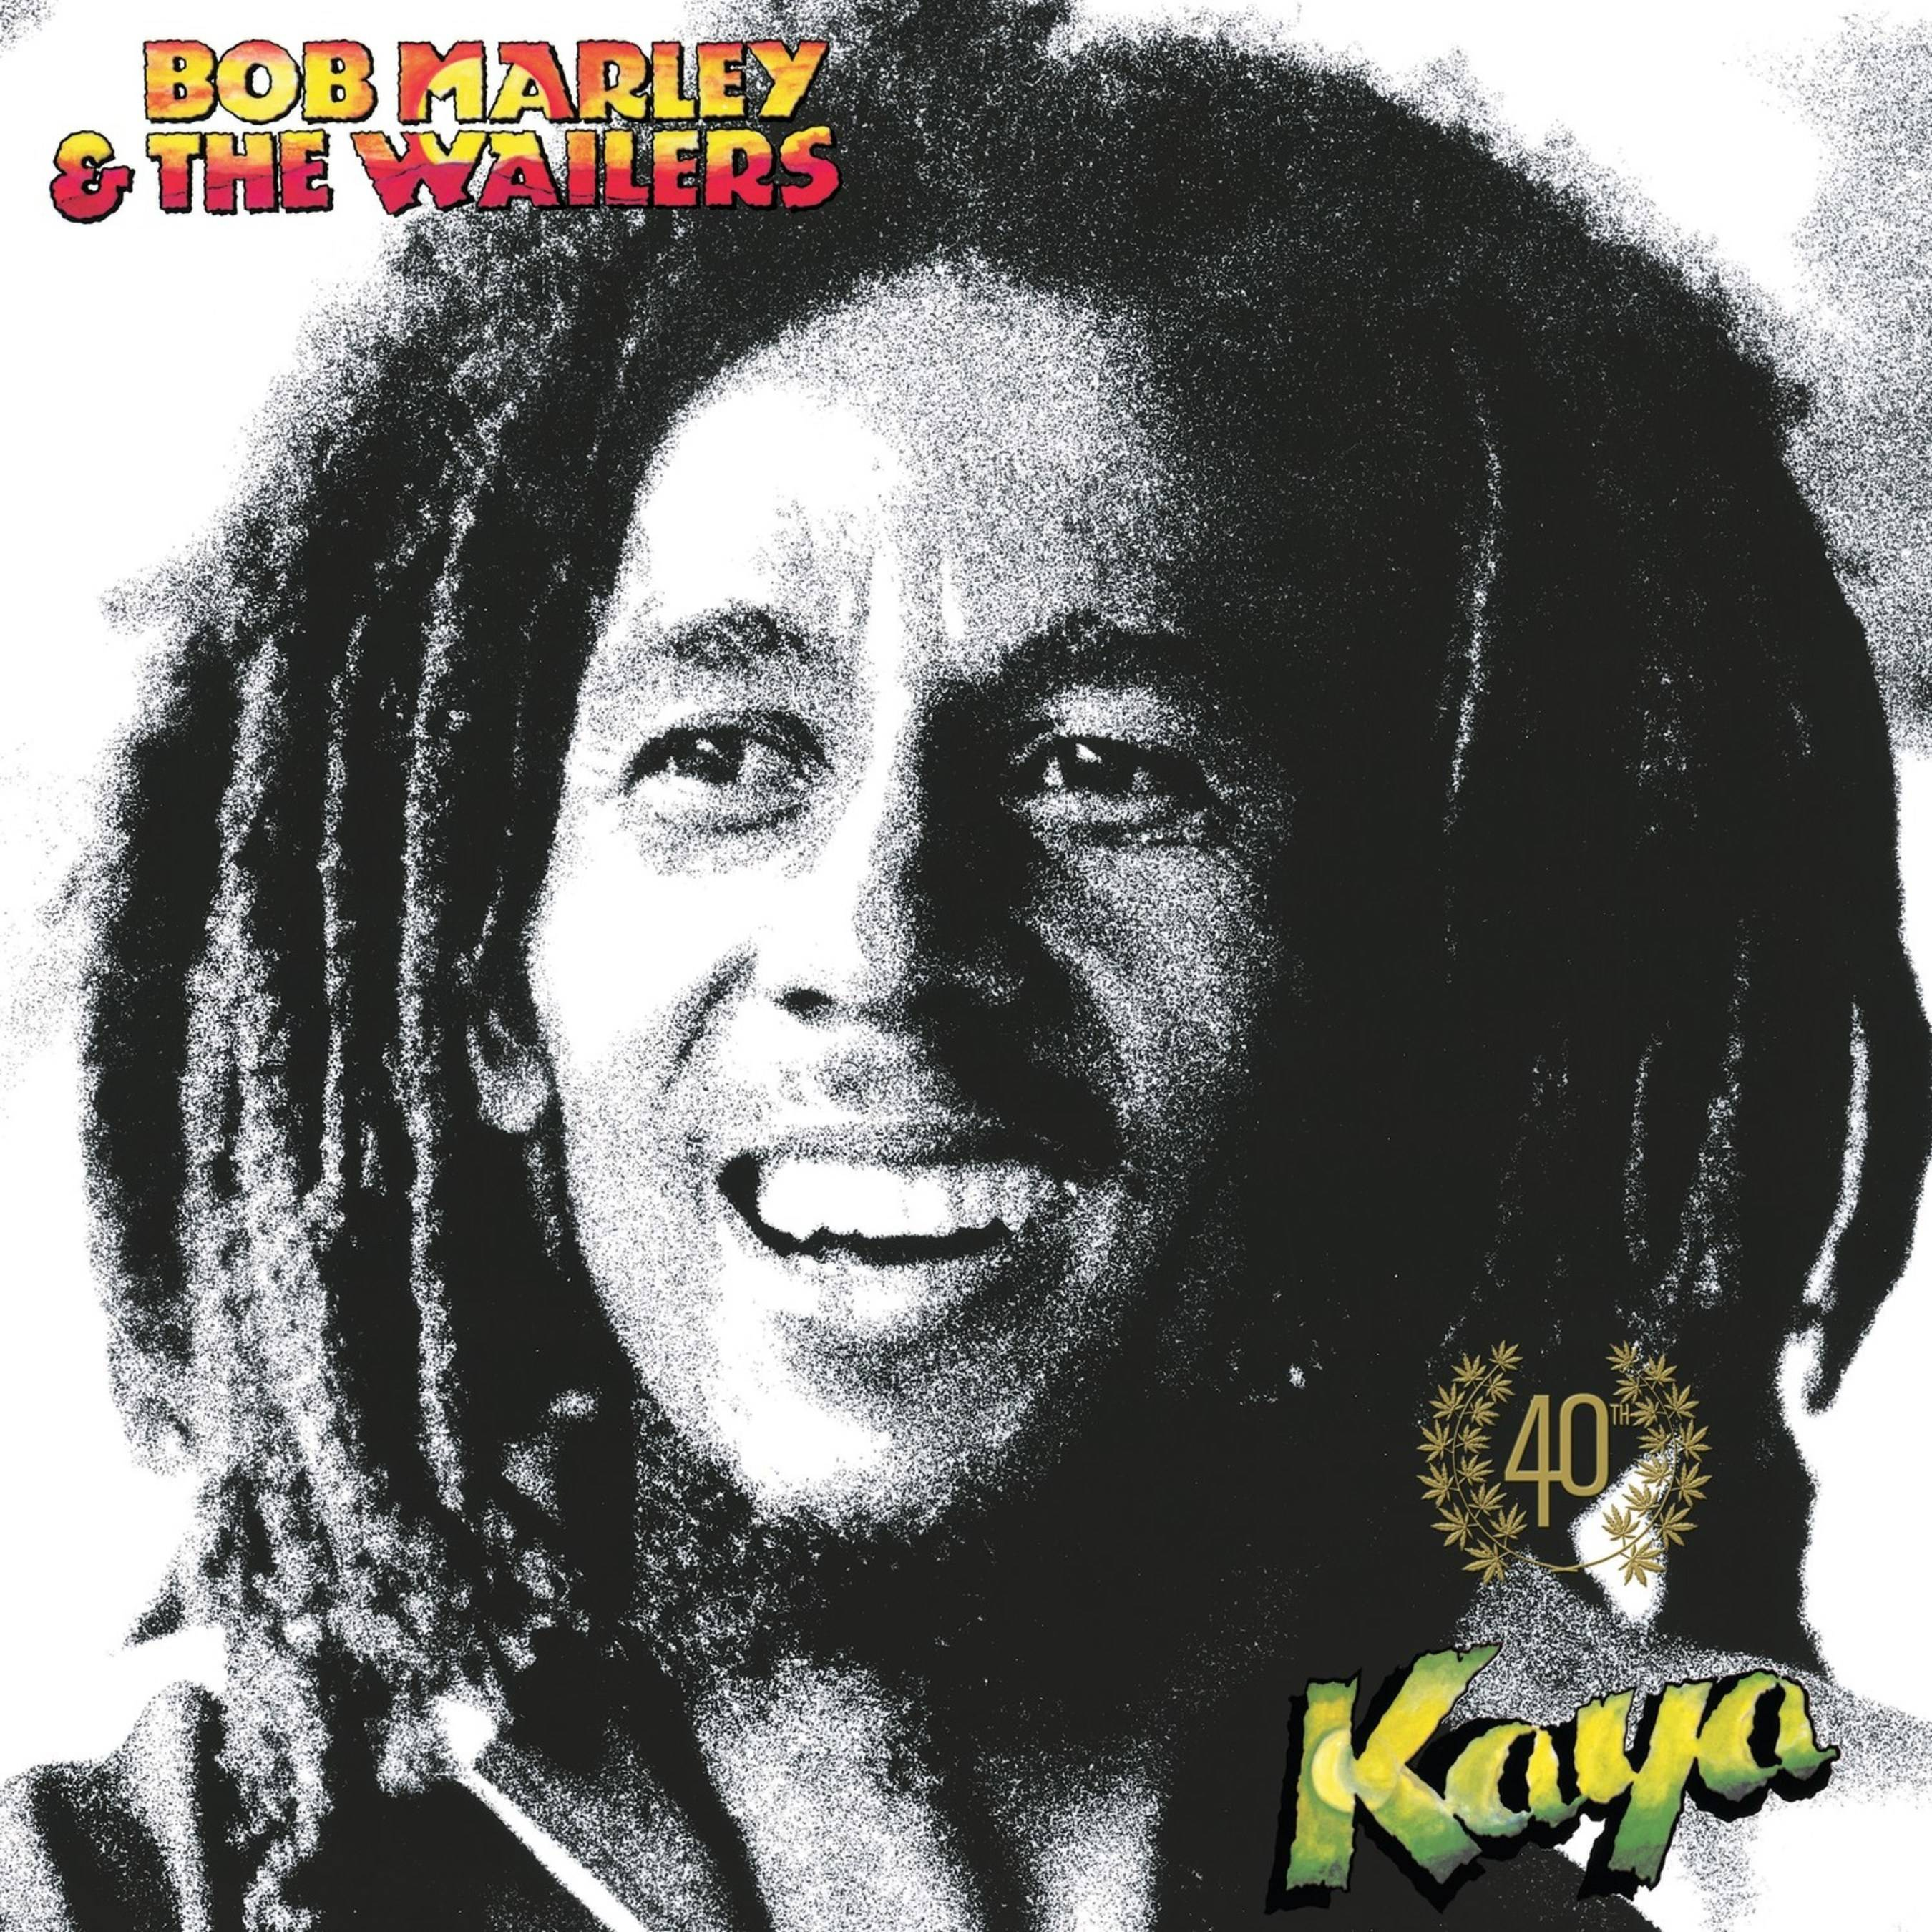 Bob Marley Amp The Wailers Satisfy Our Souls With A Stirring